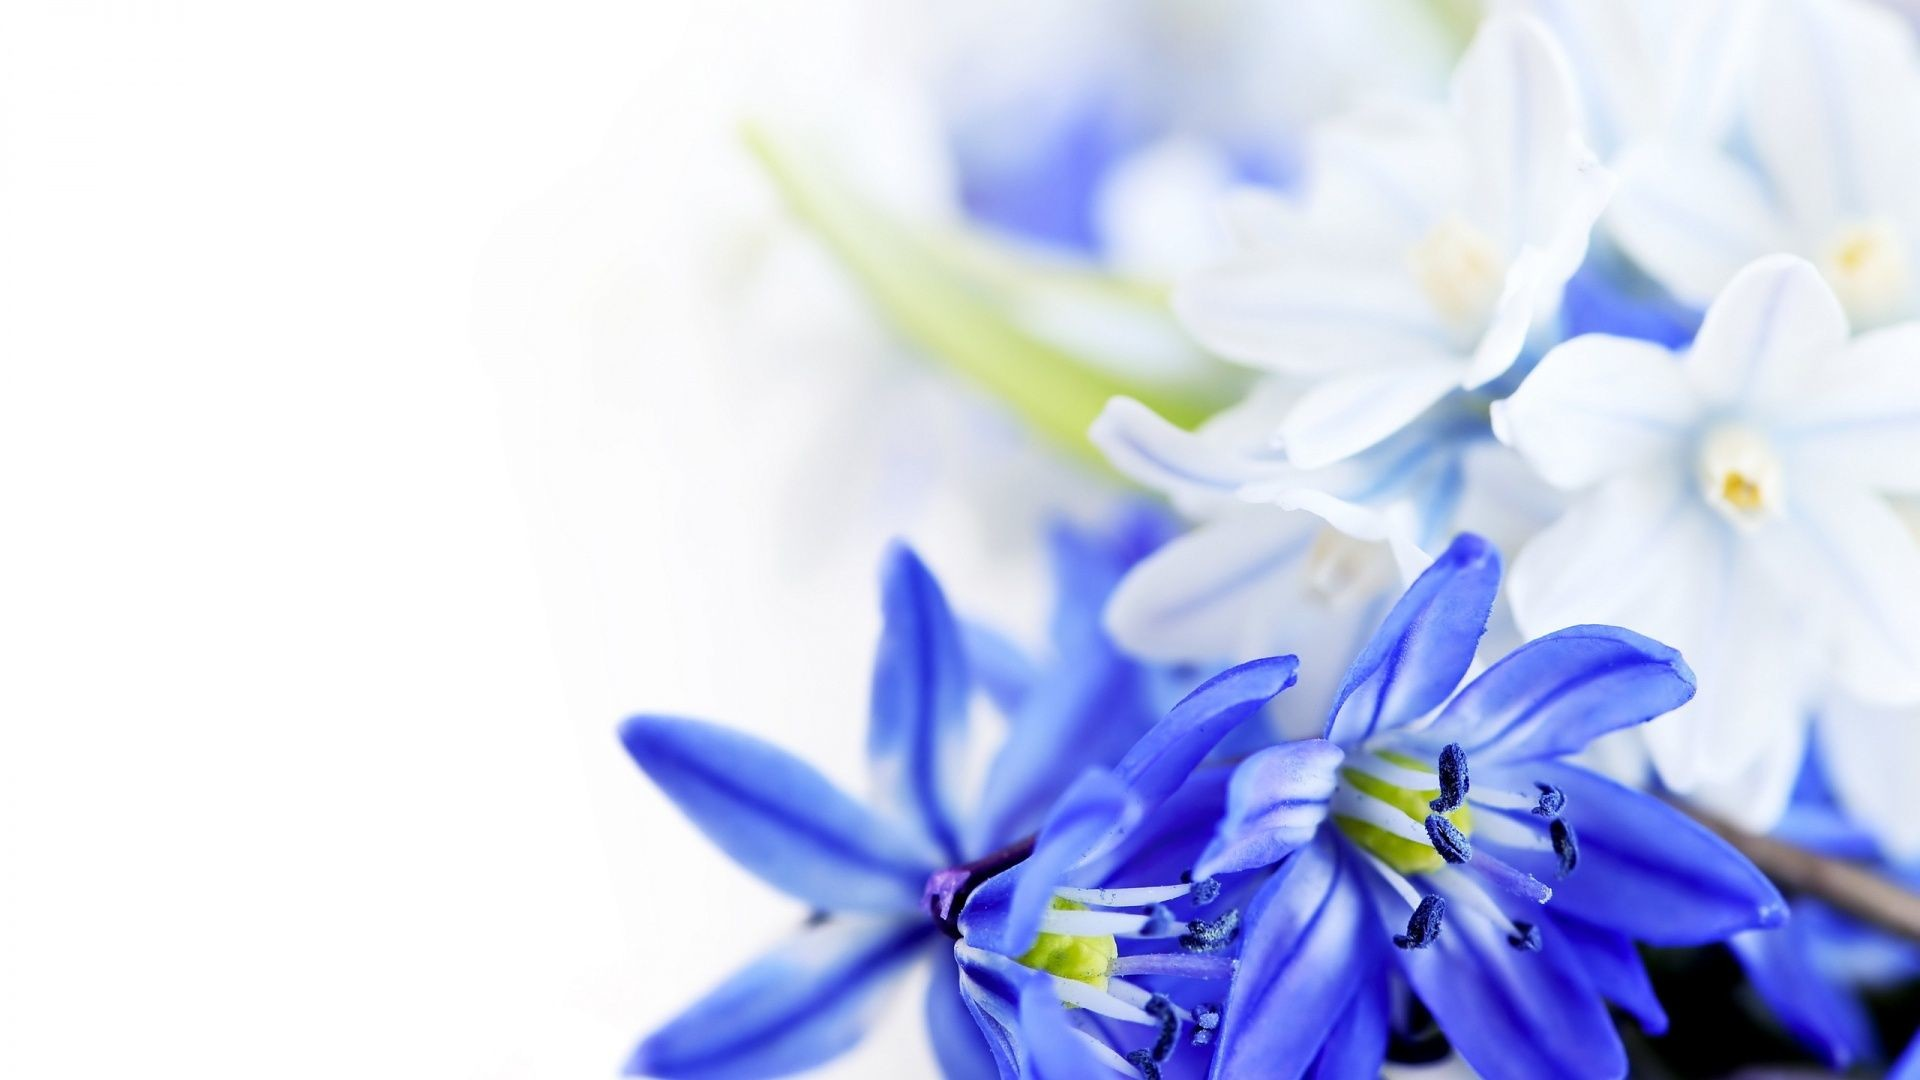 Res: 1920x1080, Blue Flowers wallpaper |  | #66279